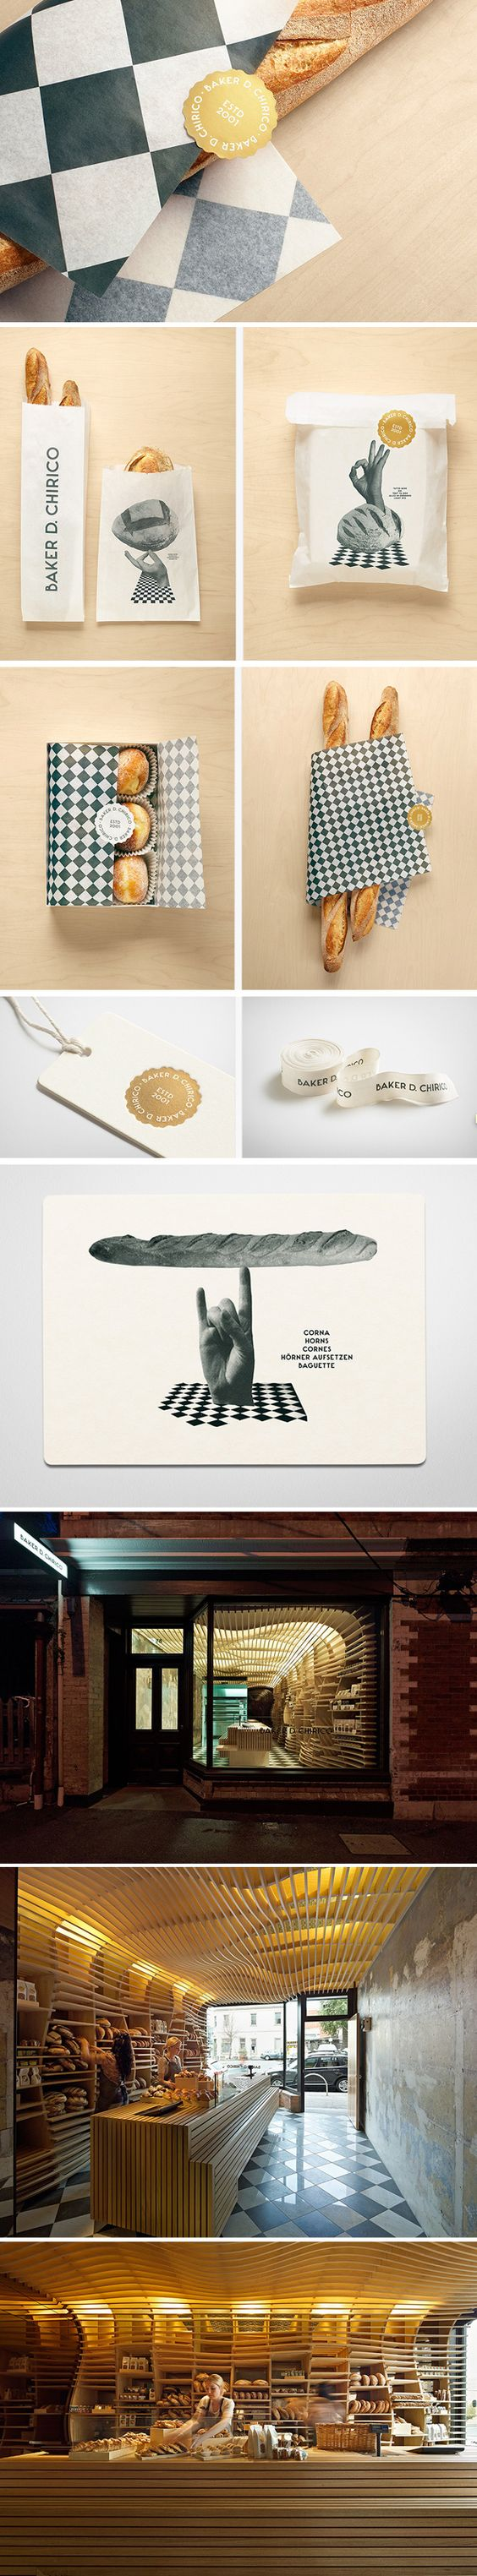 Boulangerie Baker D. Chirico. Another yummy identity packaging branding marketing story curated by Packaging Diva PD